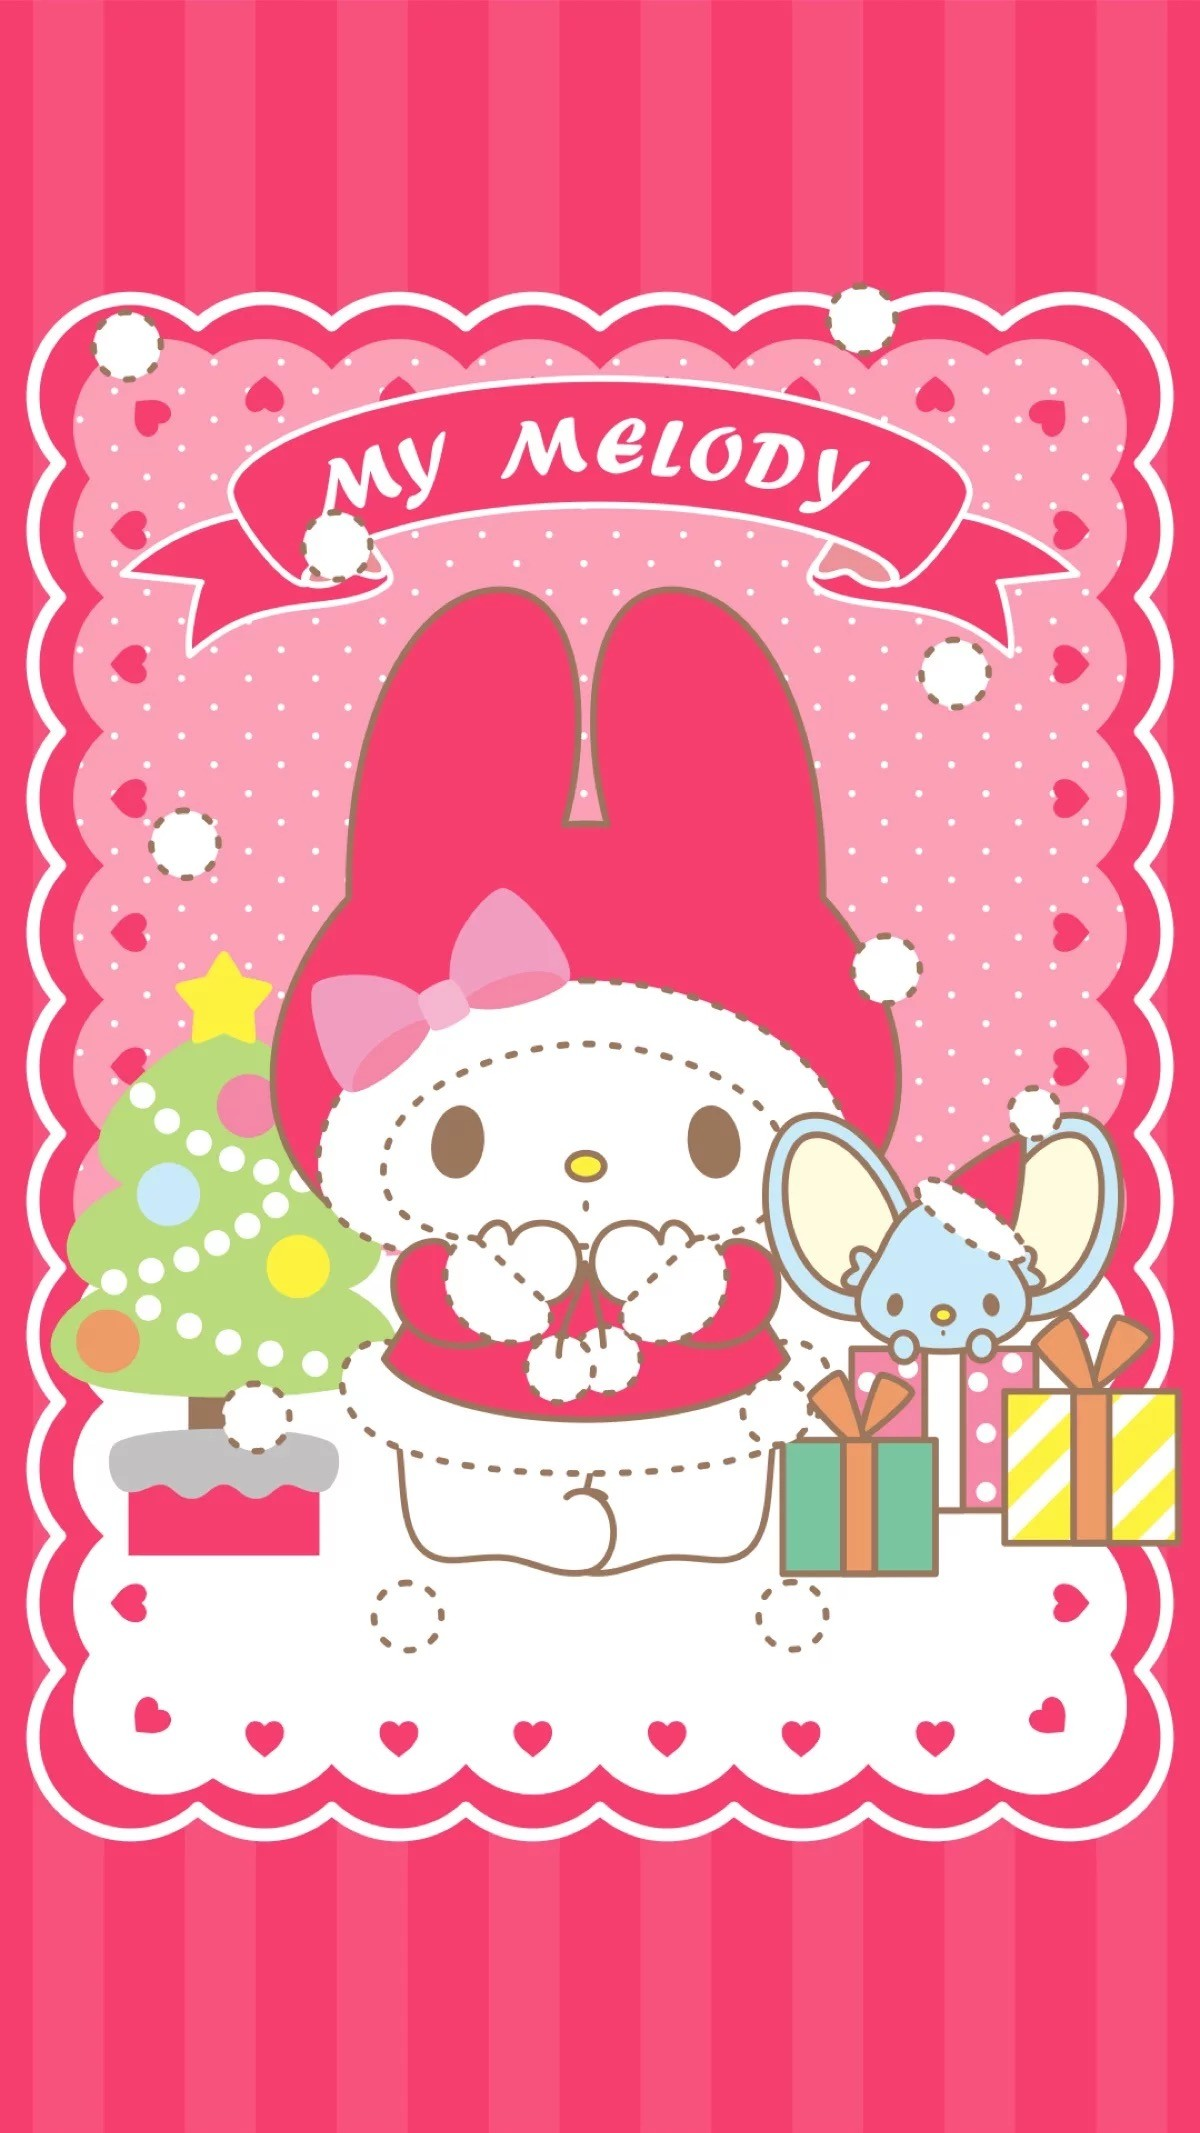 Cute Pastel Wallpaper For Iphone My Melody Wallpaper 183 ① Wallpapertag